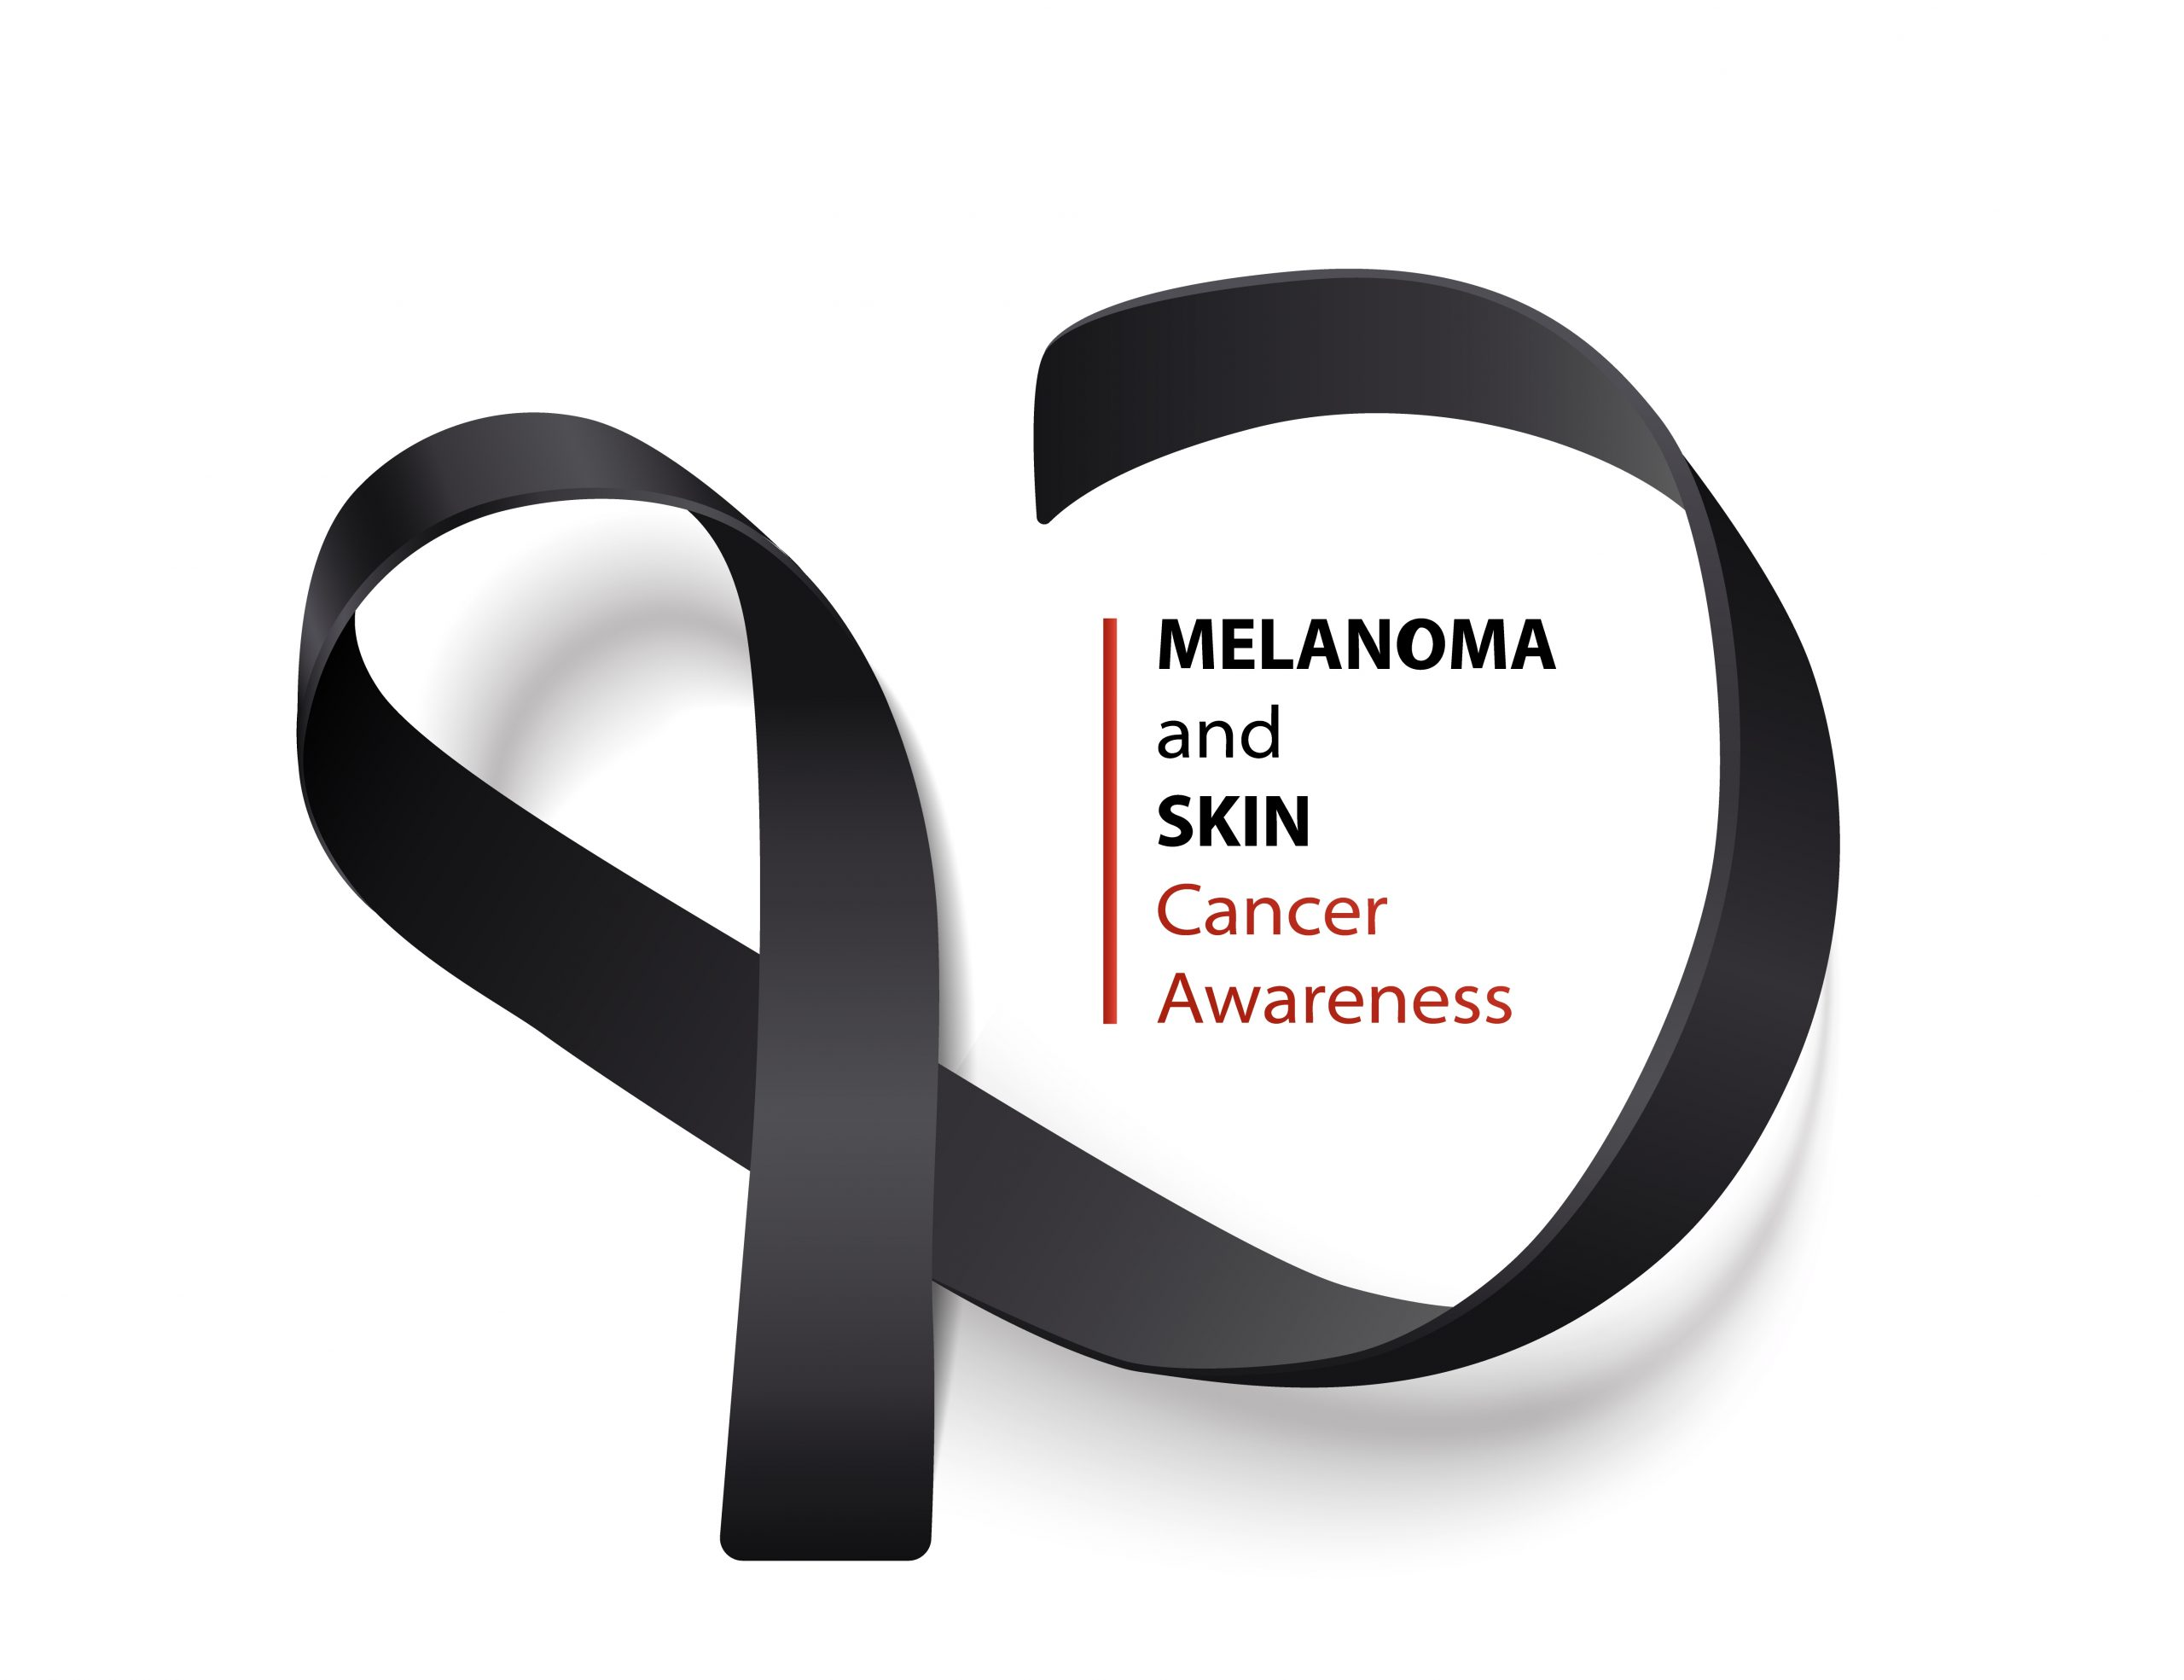 May is Skin Cancer Awareness Month